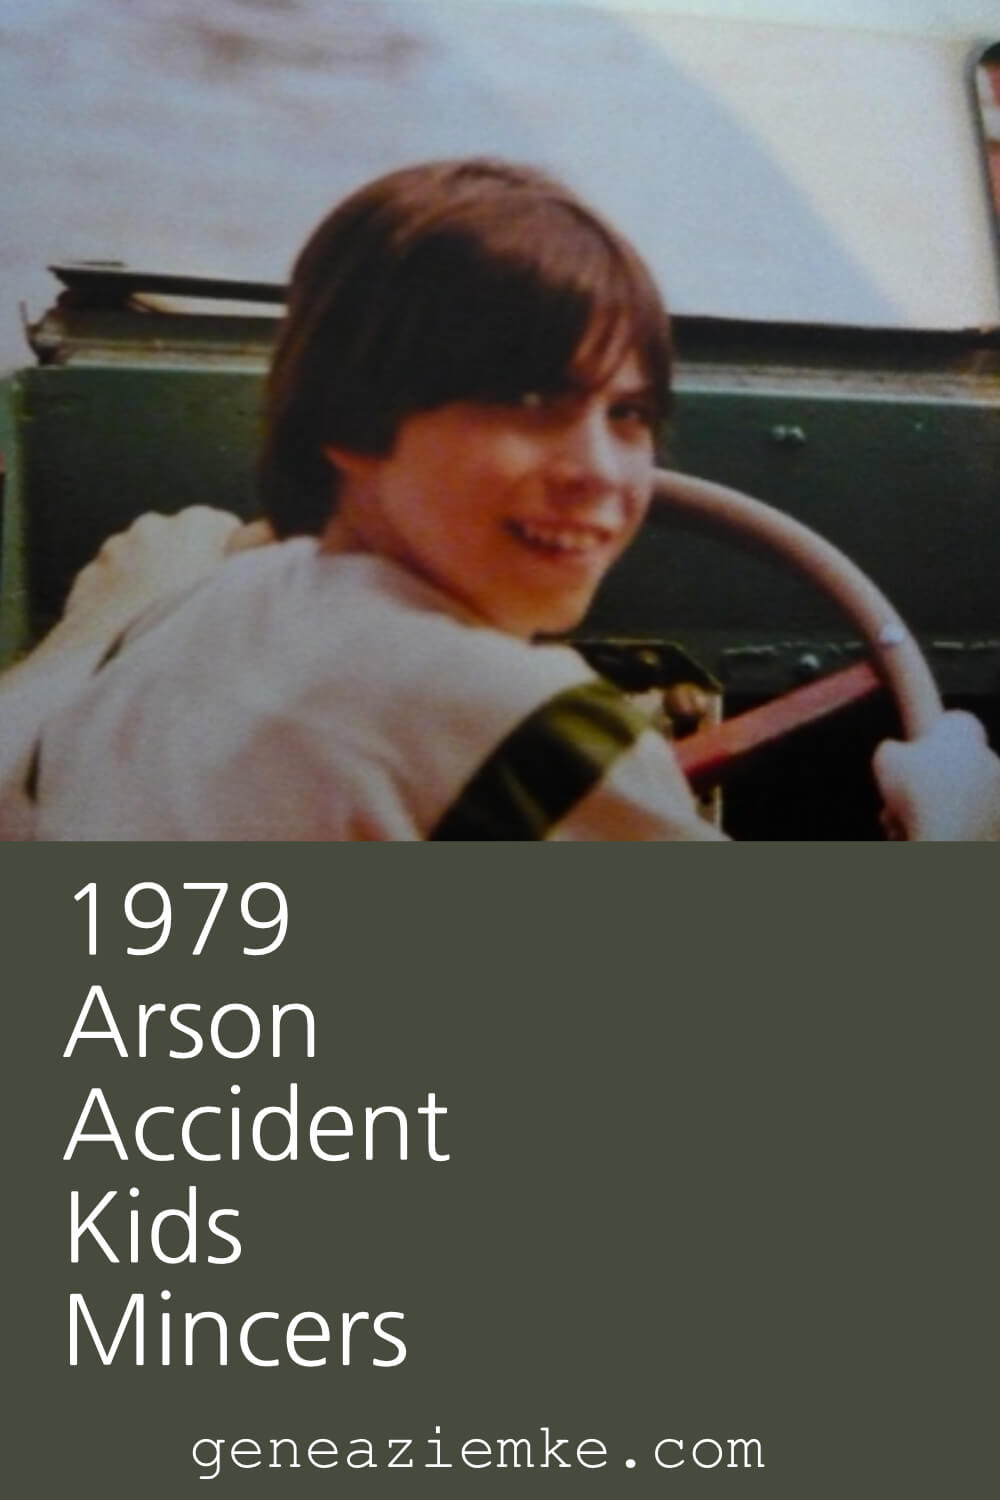 The Ziemke Story - 1979 Arson, Accident, Kids, and the Mincers